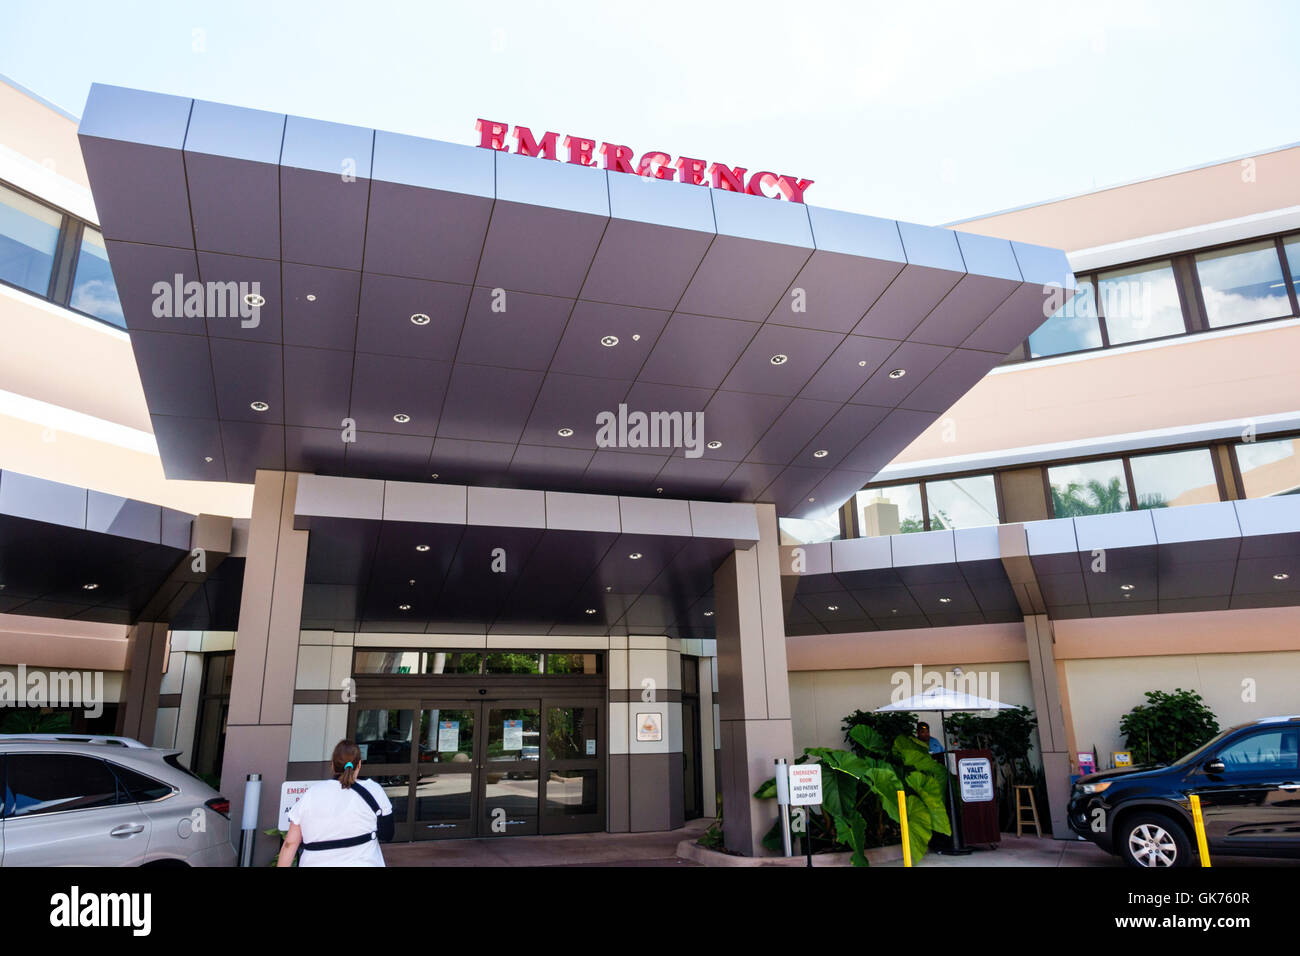 Miami Coral Gables Florida Doctors Hospital Baptist Health medical facility health emergency entrance canopy building - Stock Image